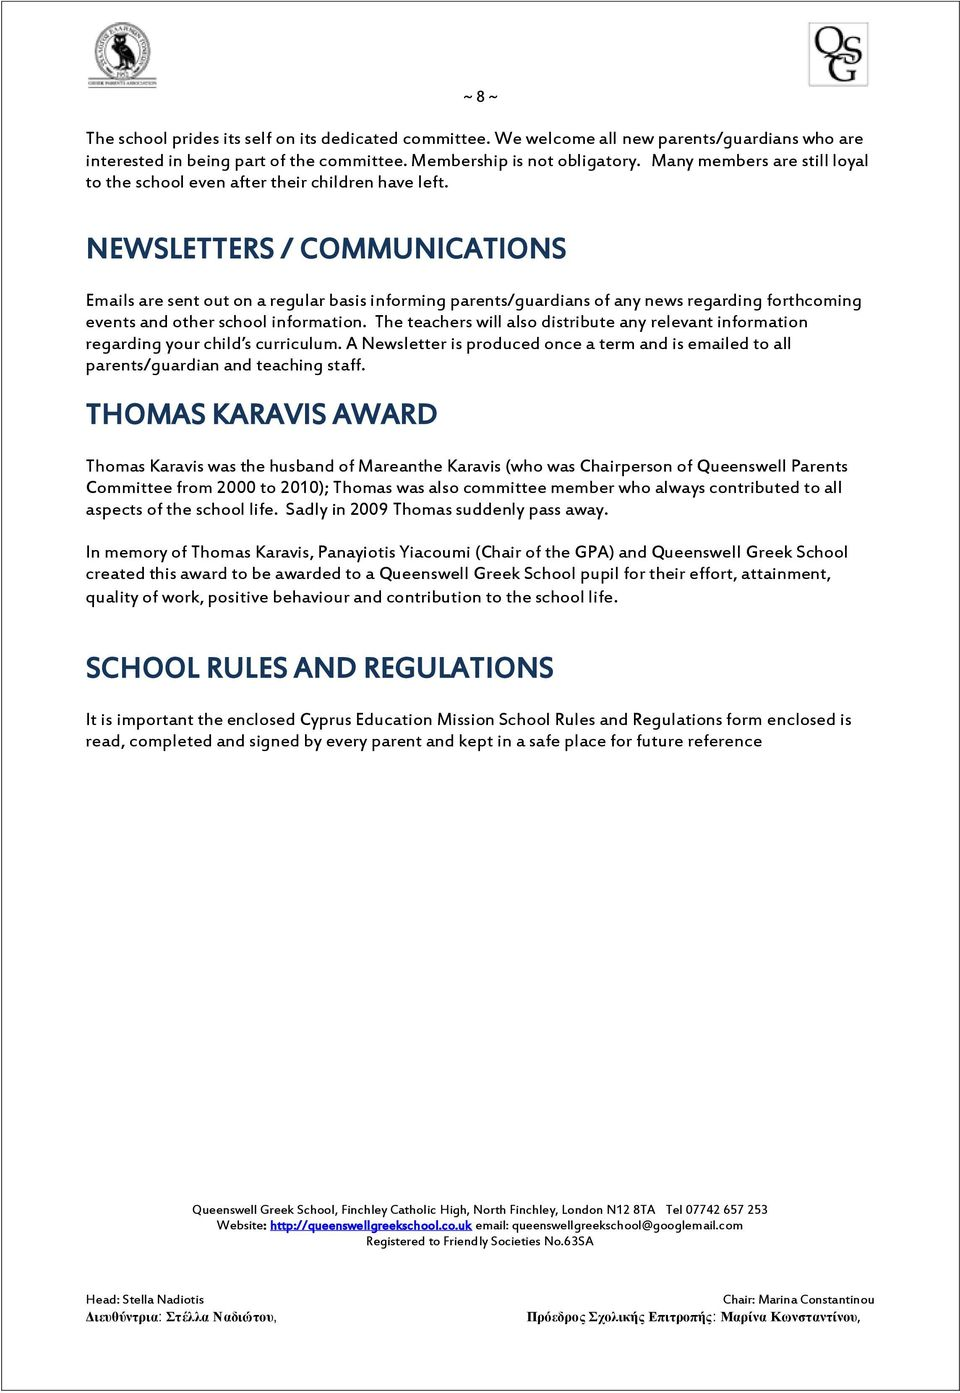 NEWSLETTERS / COMMUNICATIONS Emails are sent out on a regular basis informing parents/guardians of any news regarding forthcoming events and other school information.